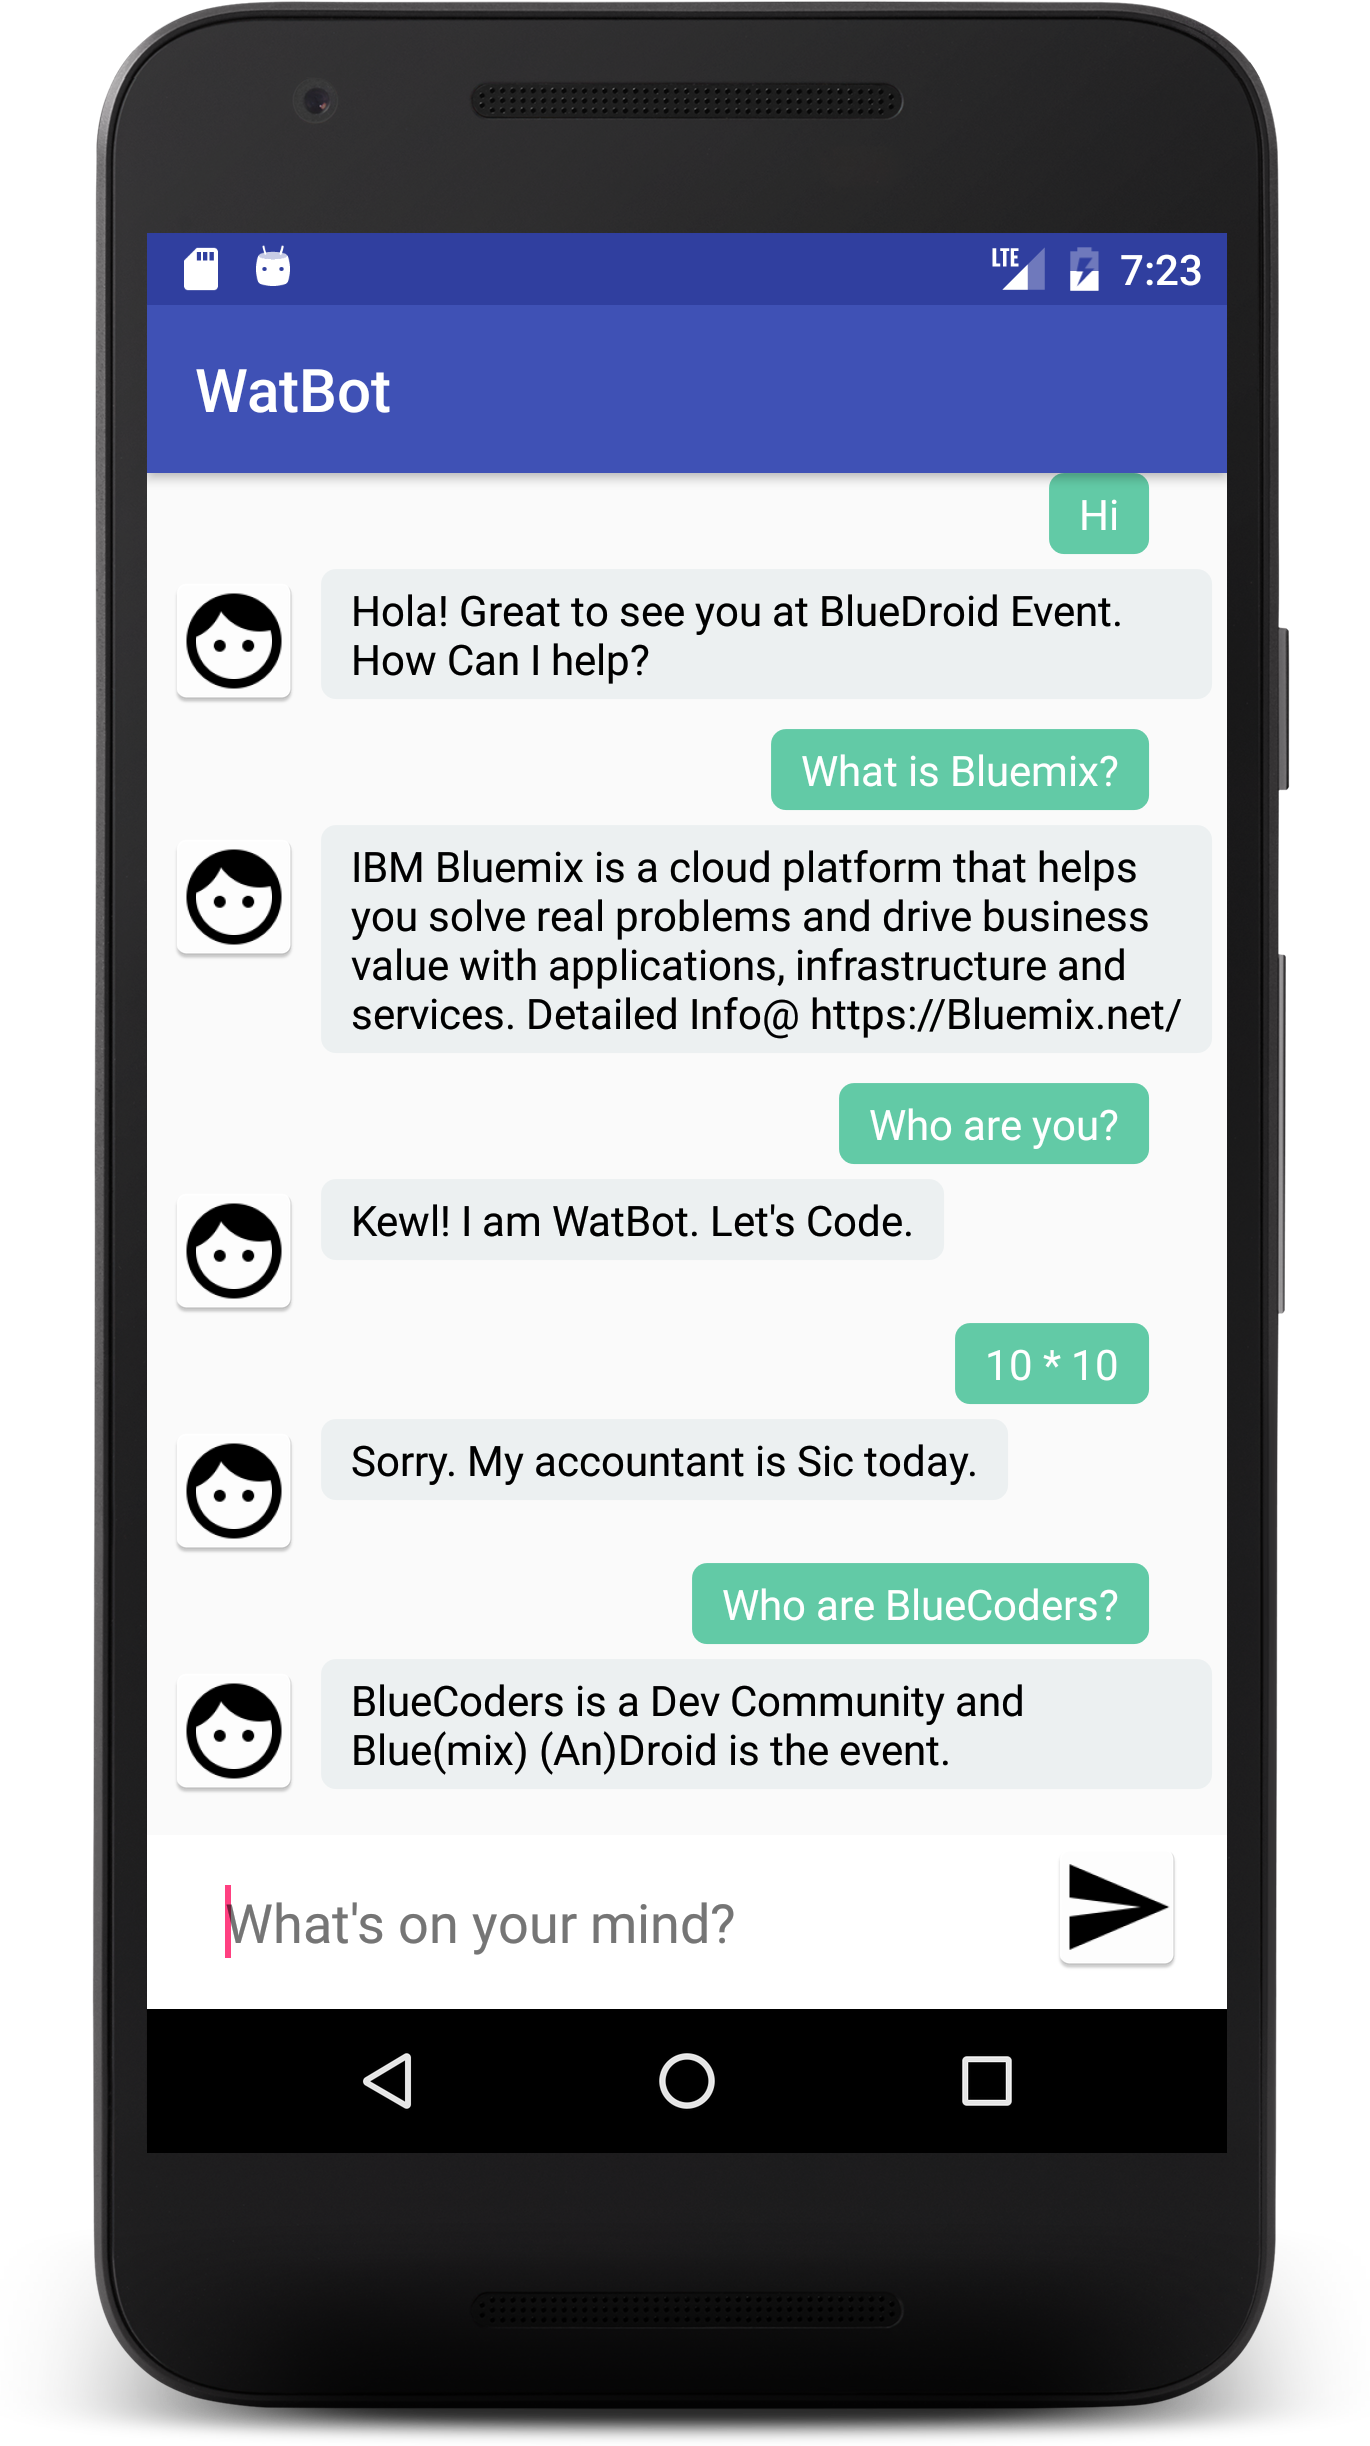 Build a voice-enabled Chatbot in minutes using Watson Java and